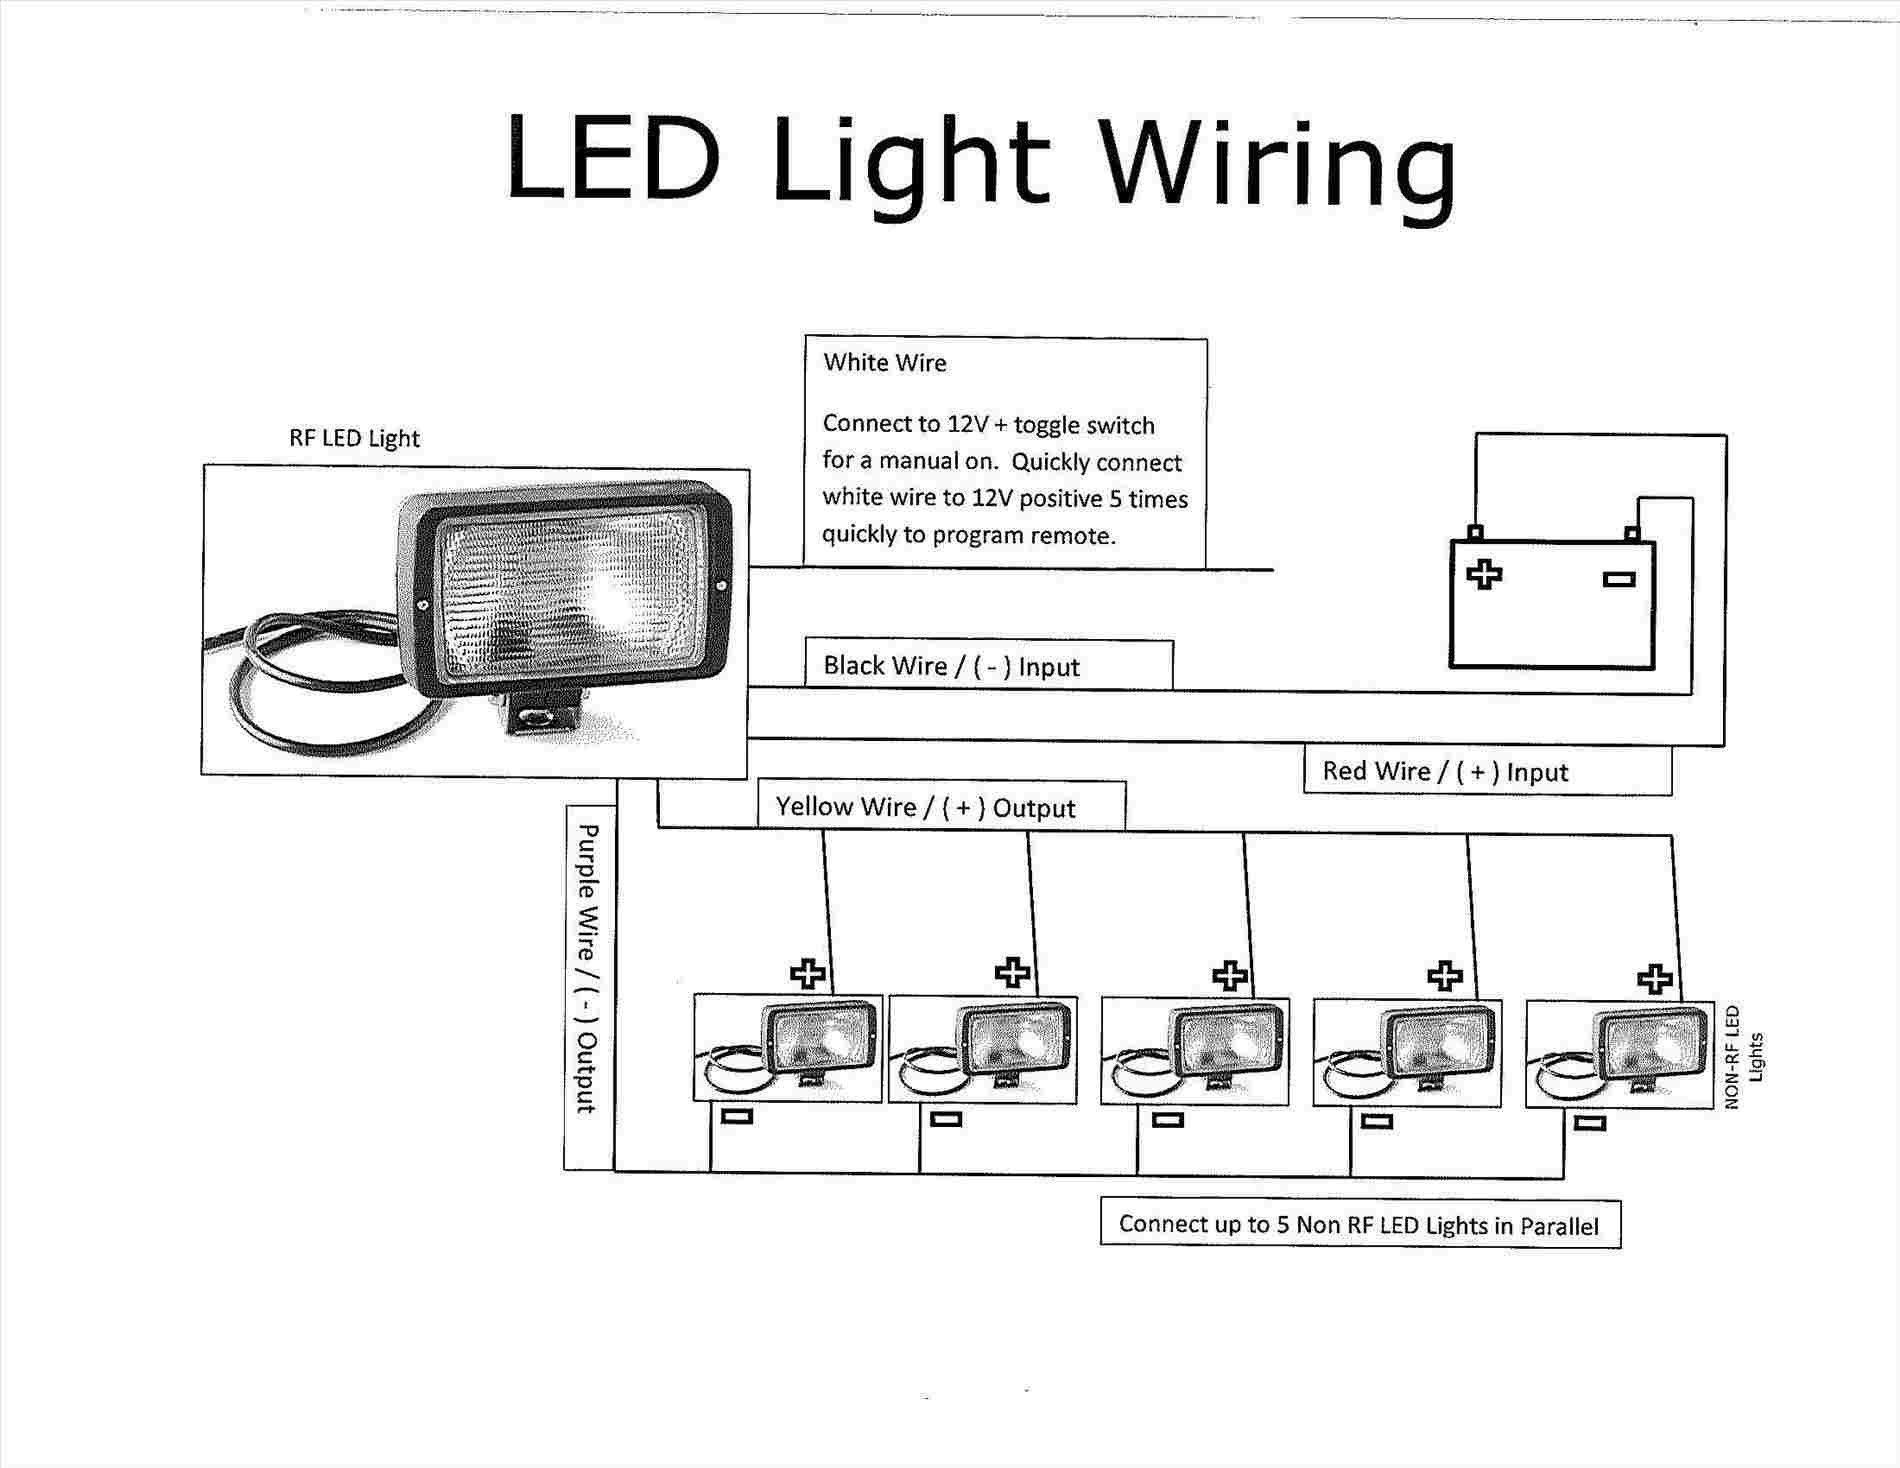 New Wiring Diagram For Multiple Lights On A Three Way Switch Diagrams Digramssample Diagramimages Diagram Wire Diagram Design